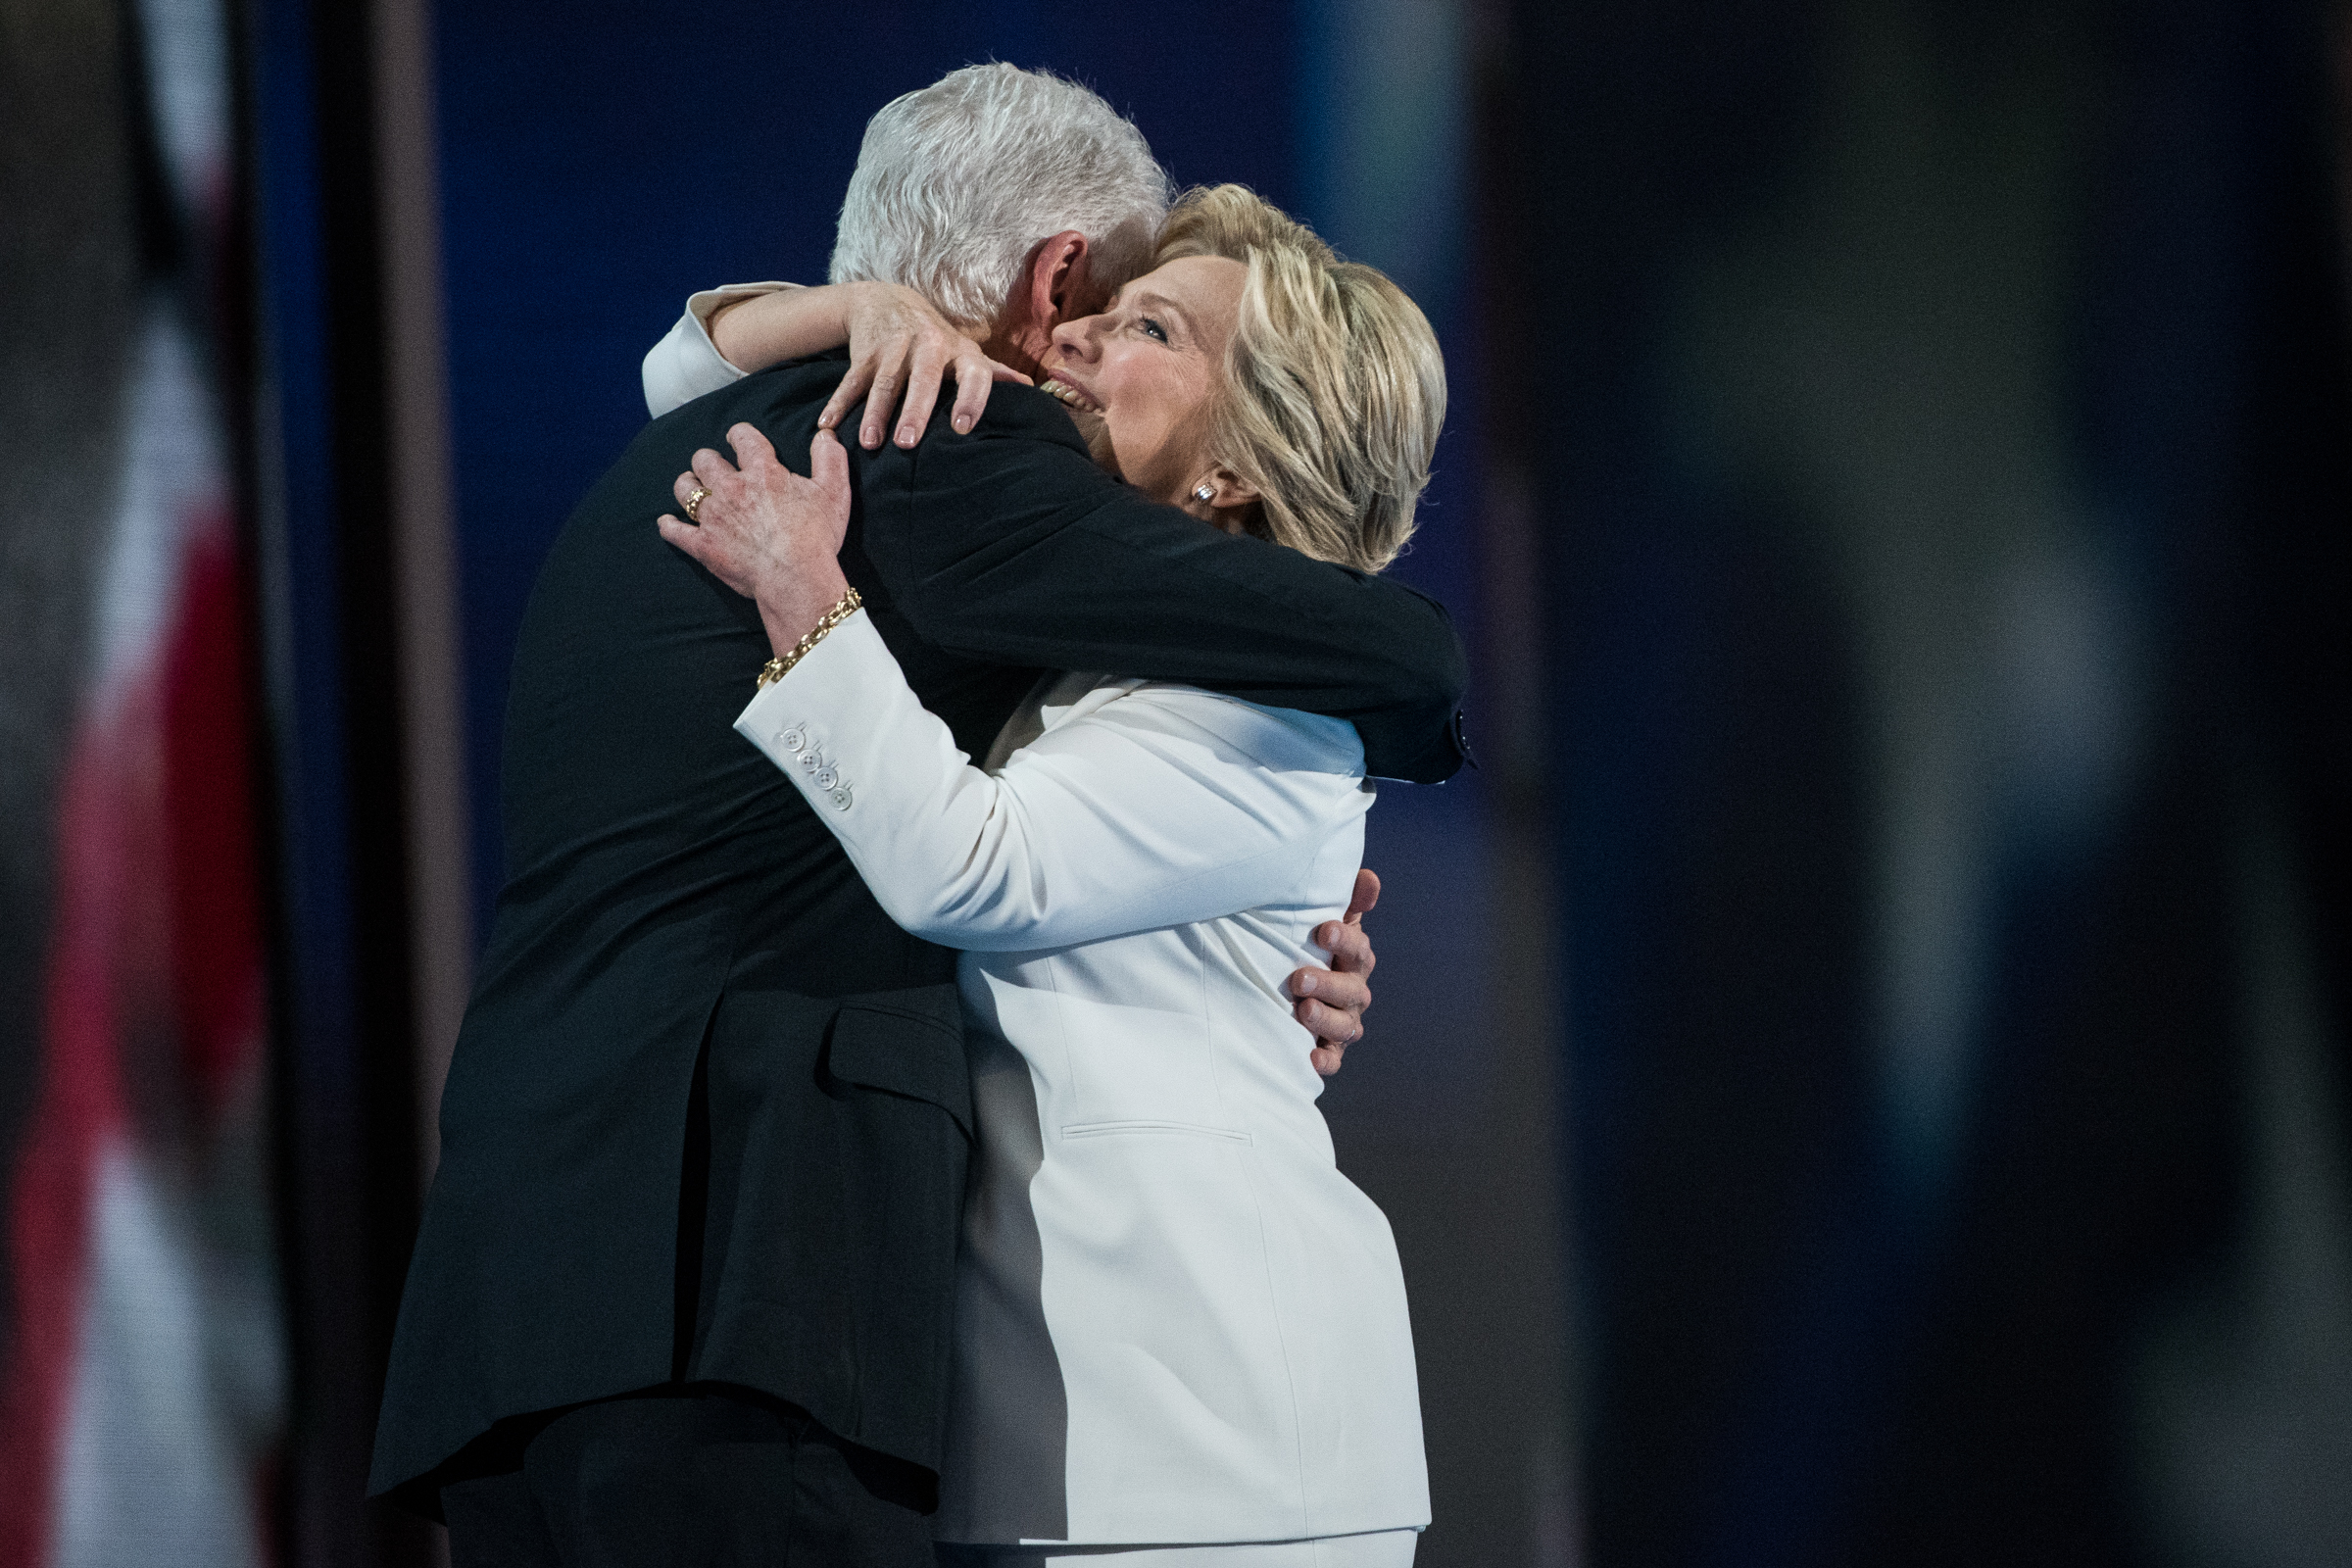 Democratic presidential nominee Hillary Clinton hugs former president Bill Clinton at the Democratic National Convention inside the Wells Fargo Center in Philadelphia on Thursday July 28, 2016. (Michael Ares /Philadelphia Inquirer)